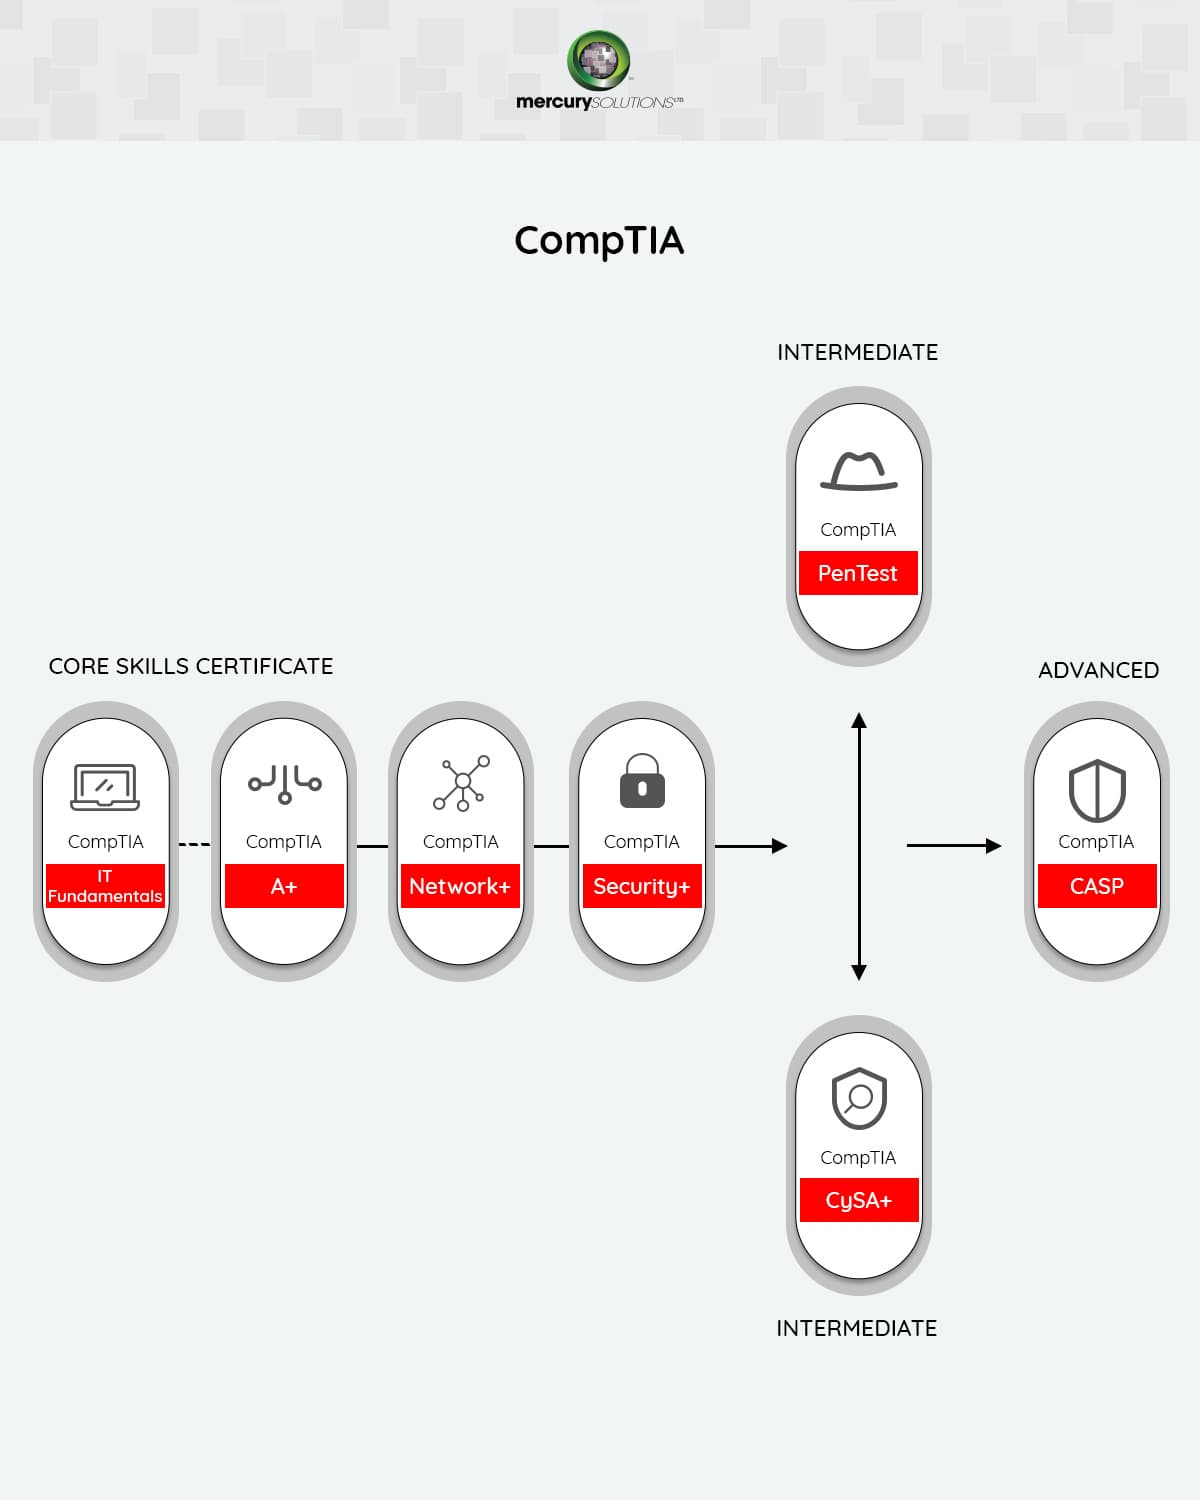 CompTIA Certification Path